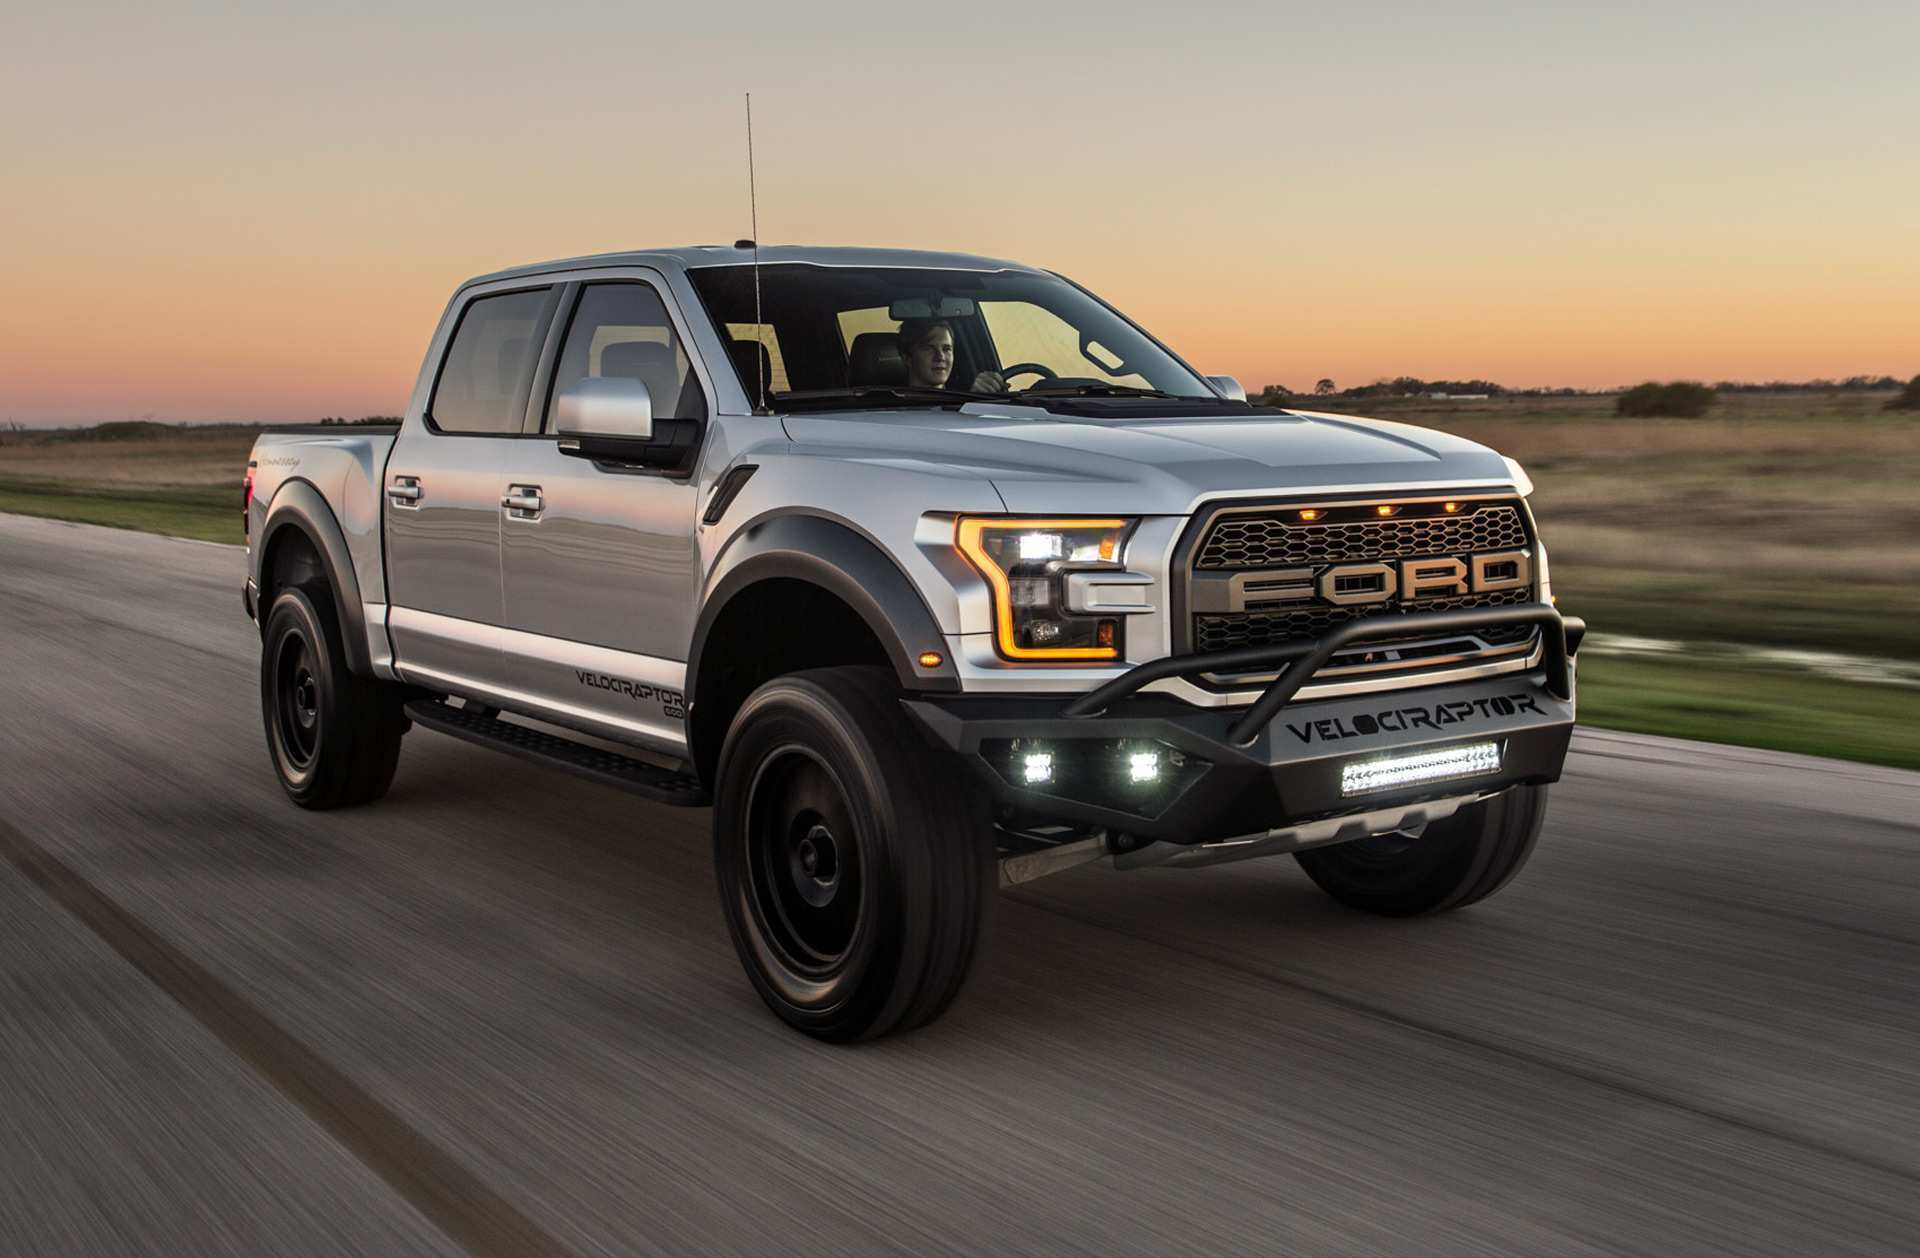 53 Best Review 2019 Ford Pickup Truck Photos by 2019 Ford Pickup Truck